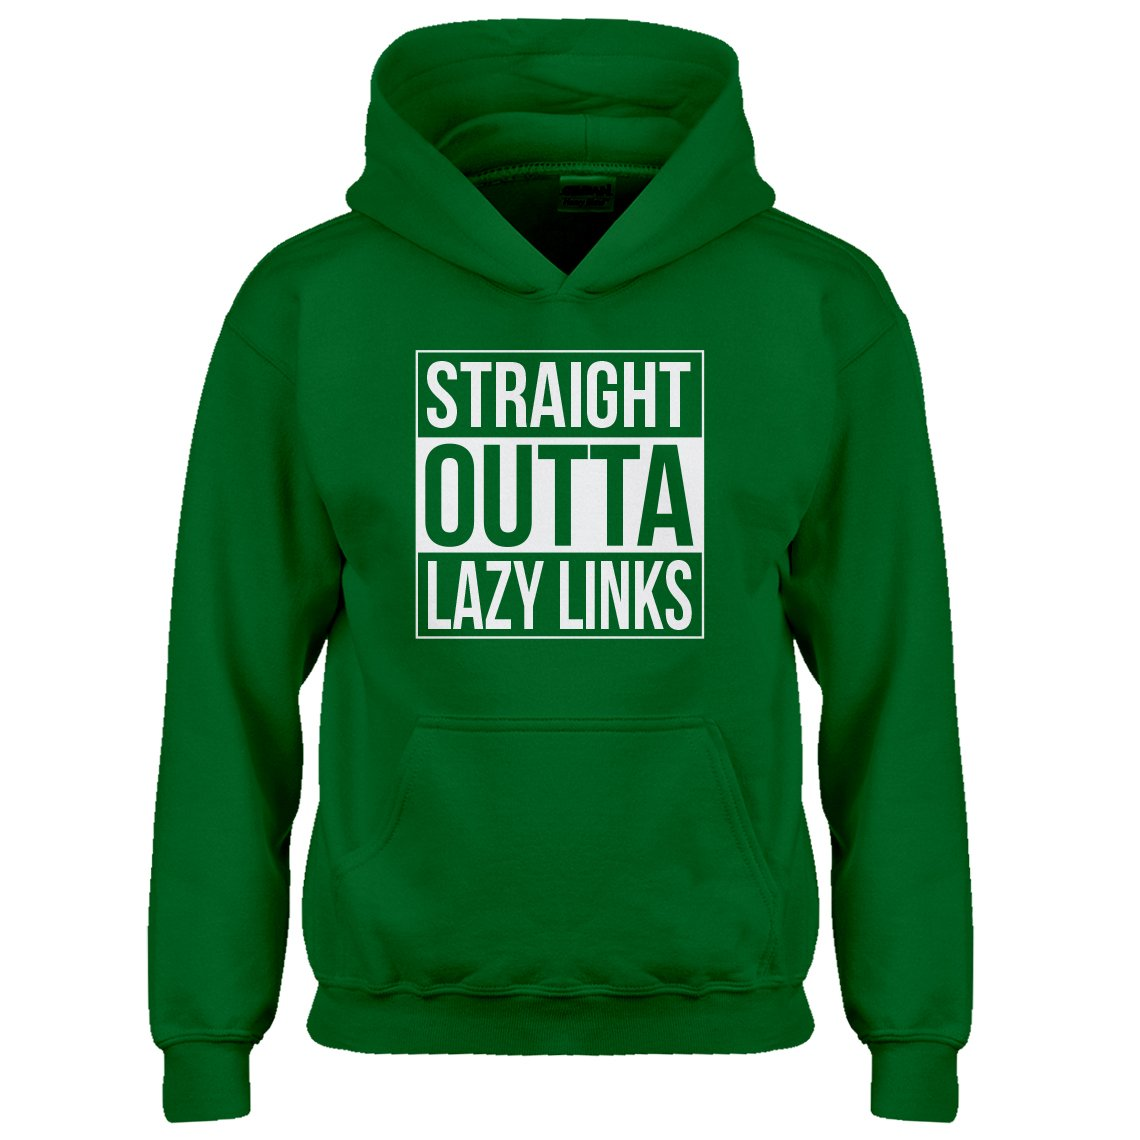 Indica Plateau Youth Straight Outta Lazy Links Kids Hoodie 3700-Z